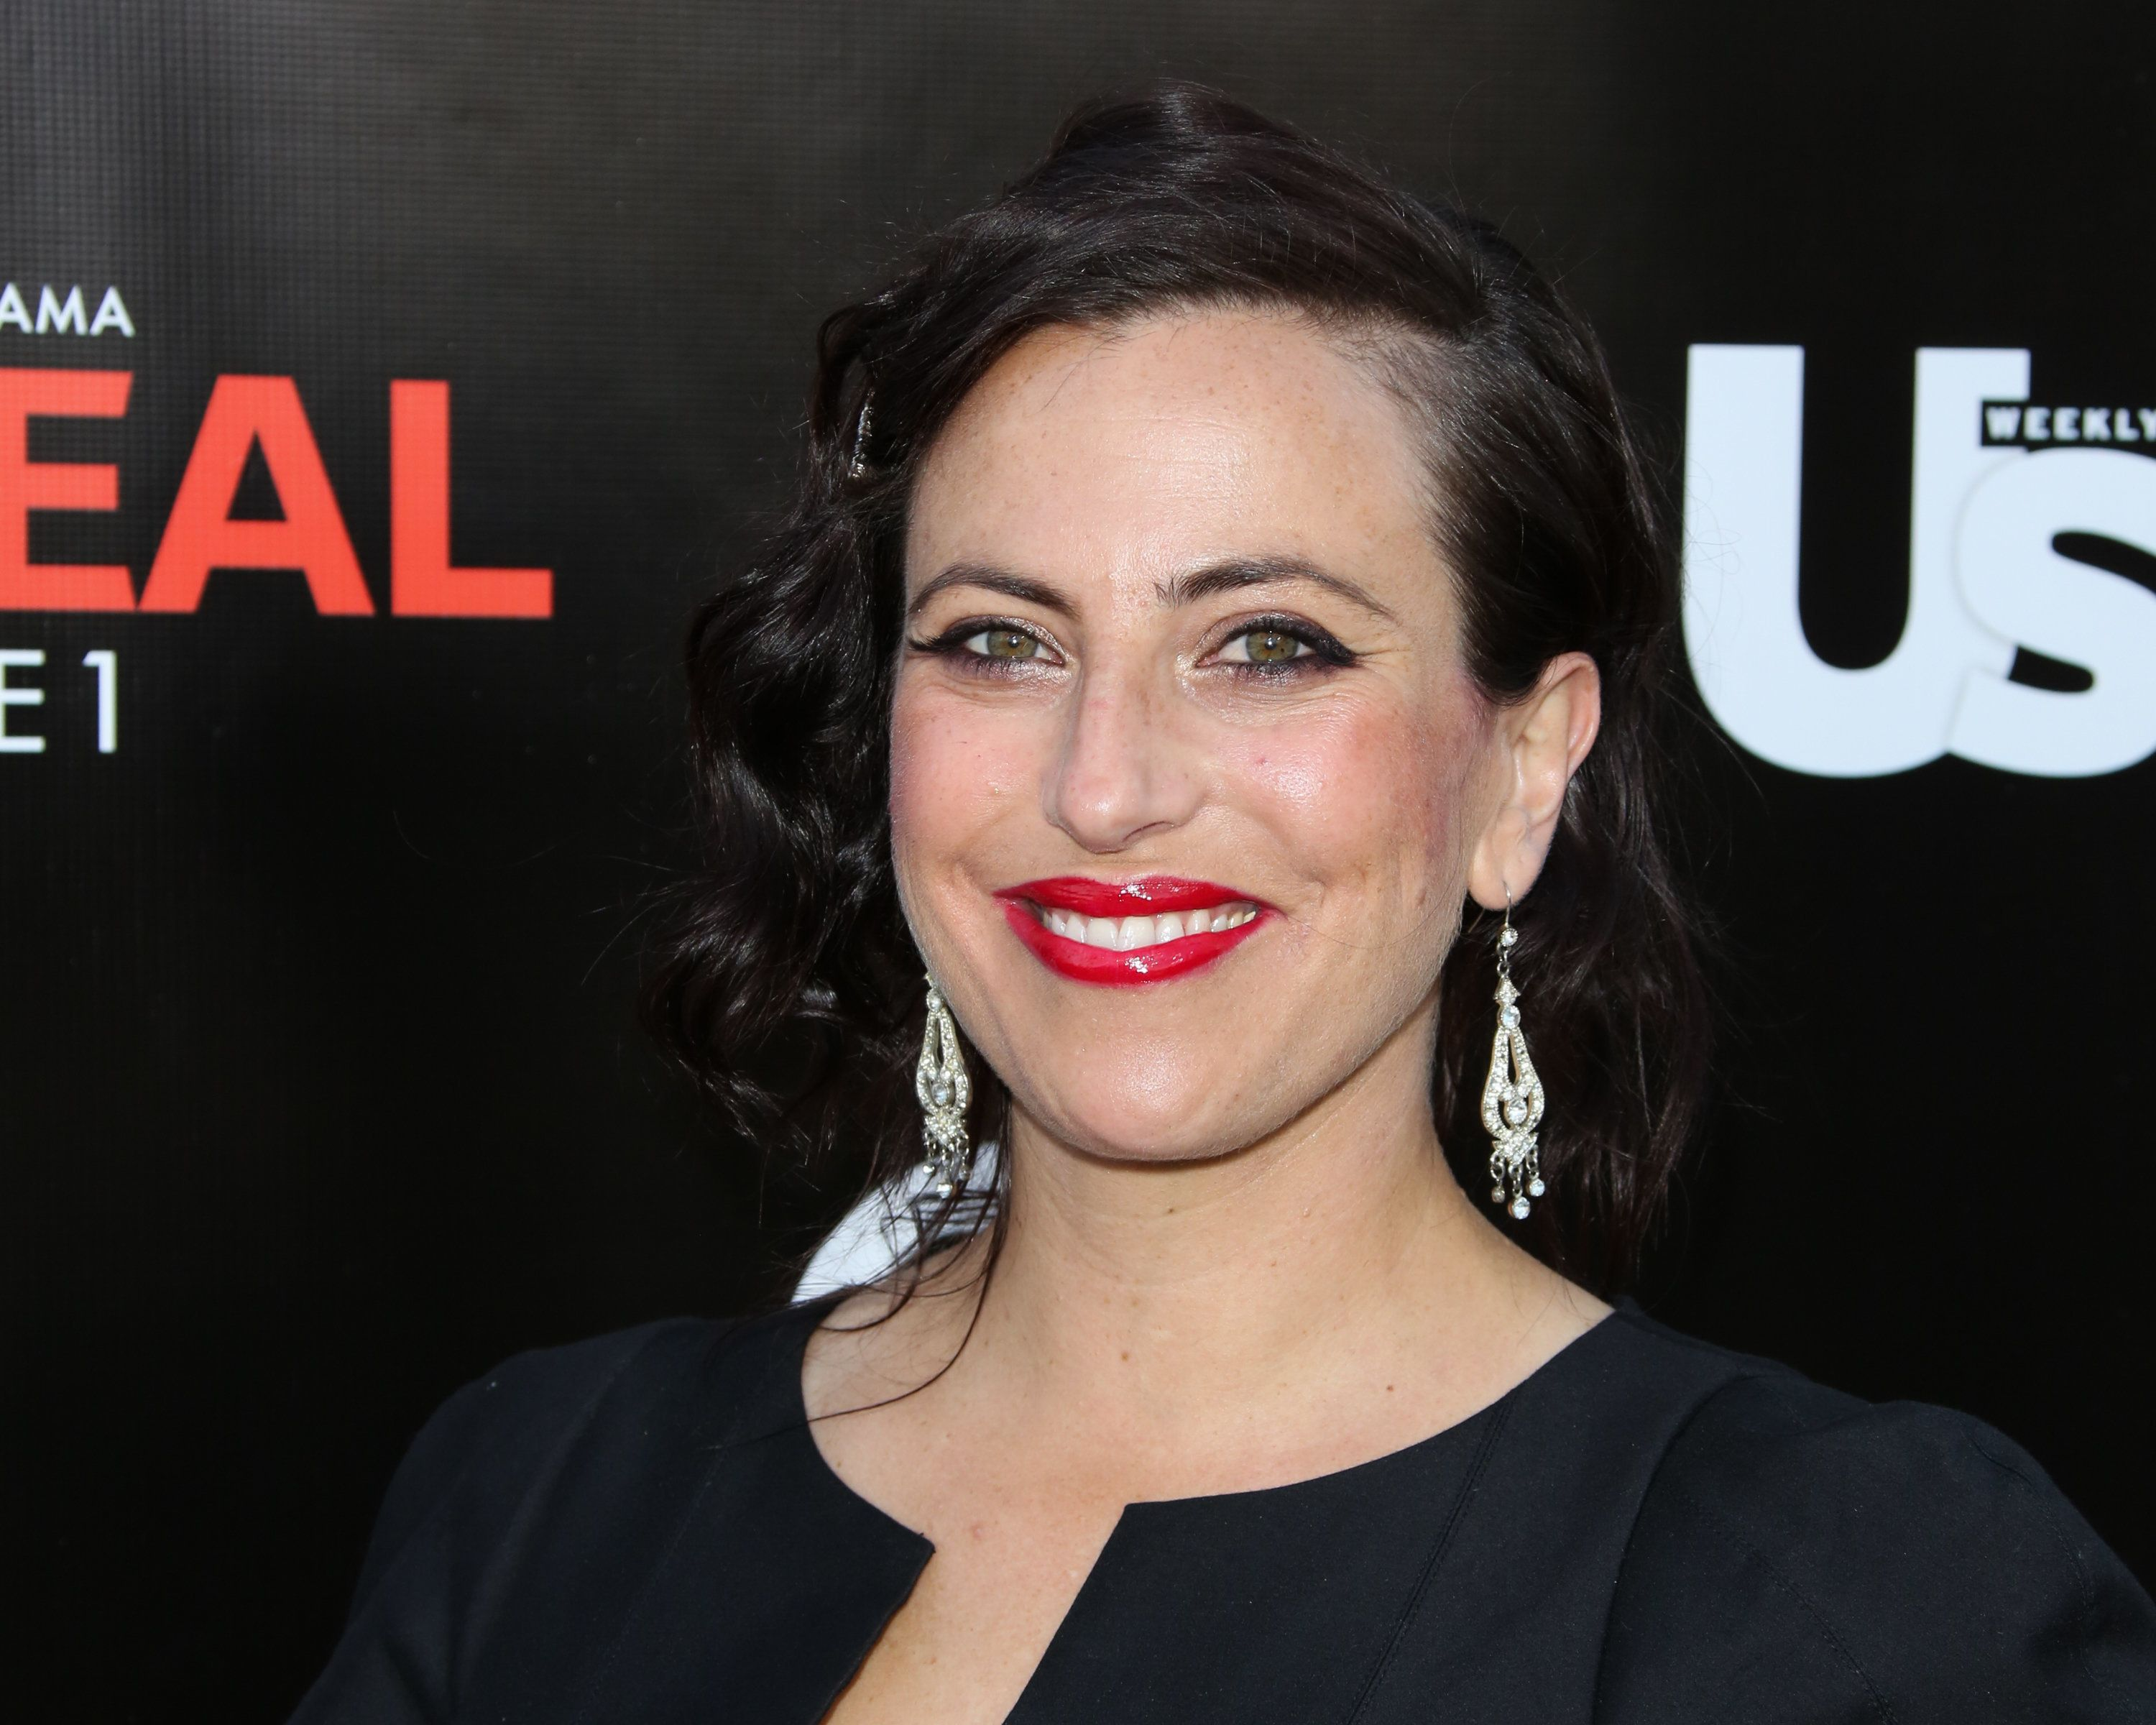 BEVERLY HILLS, CA - MAY 20:  Director Sarah Gertrude Shapiro attends the 'Unreal' premiere party at SIXTY Beverly Hills on May 20, 2015 in Beverly Hills, California.  (Photo by Paul Archuleta/FilmMagic)